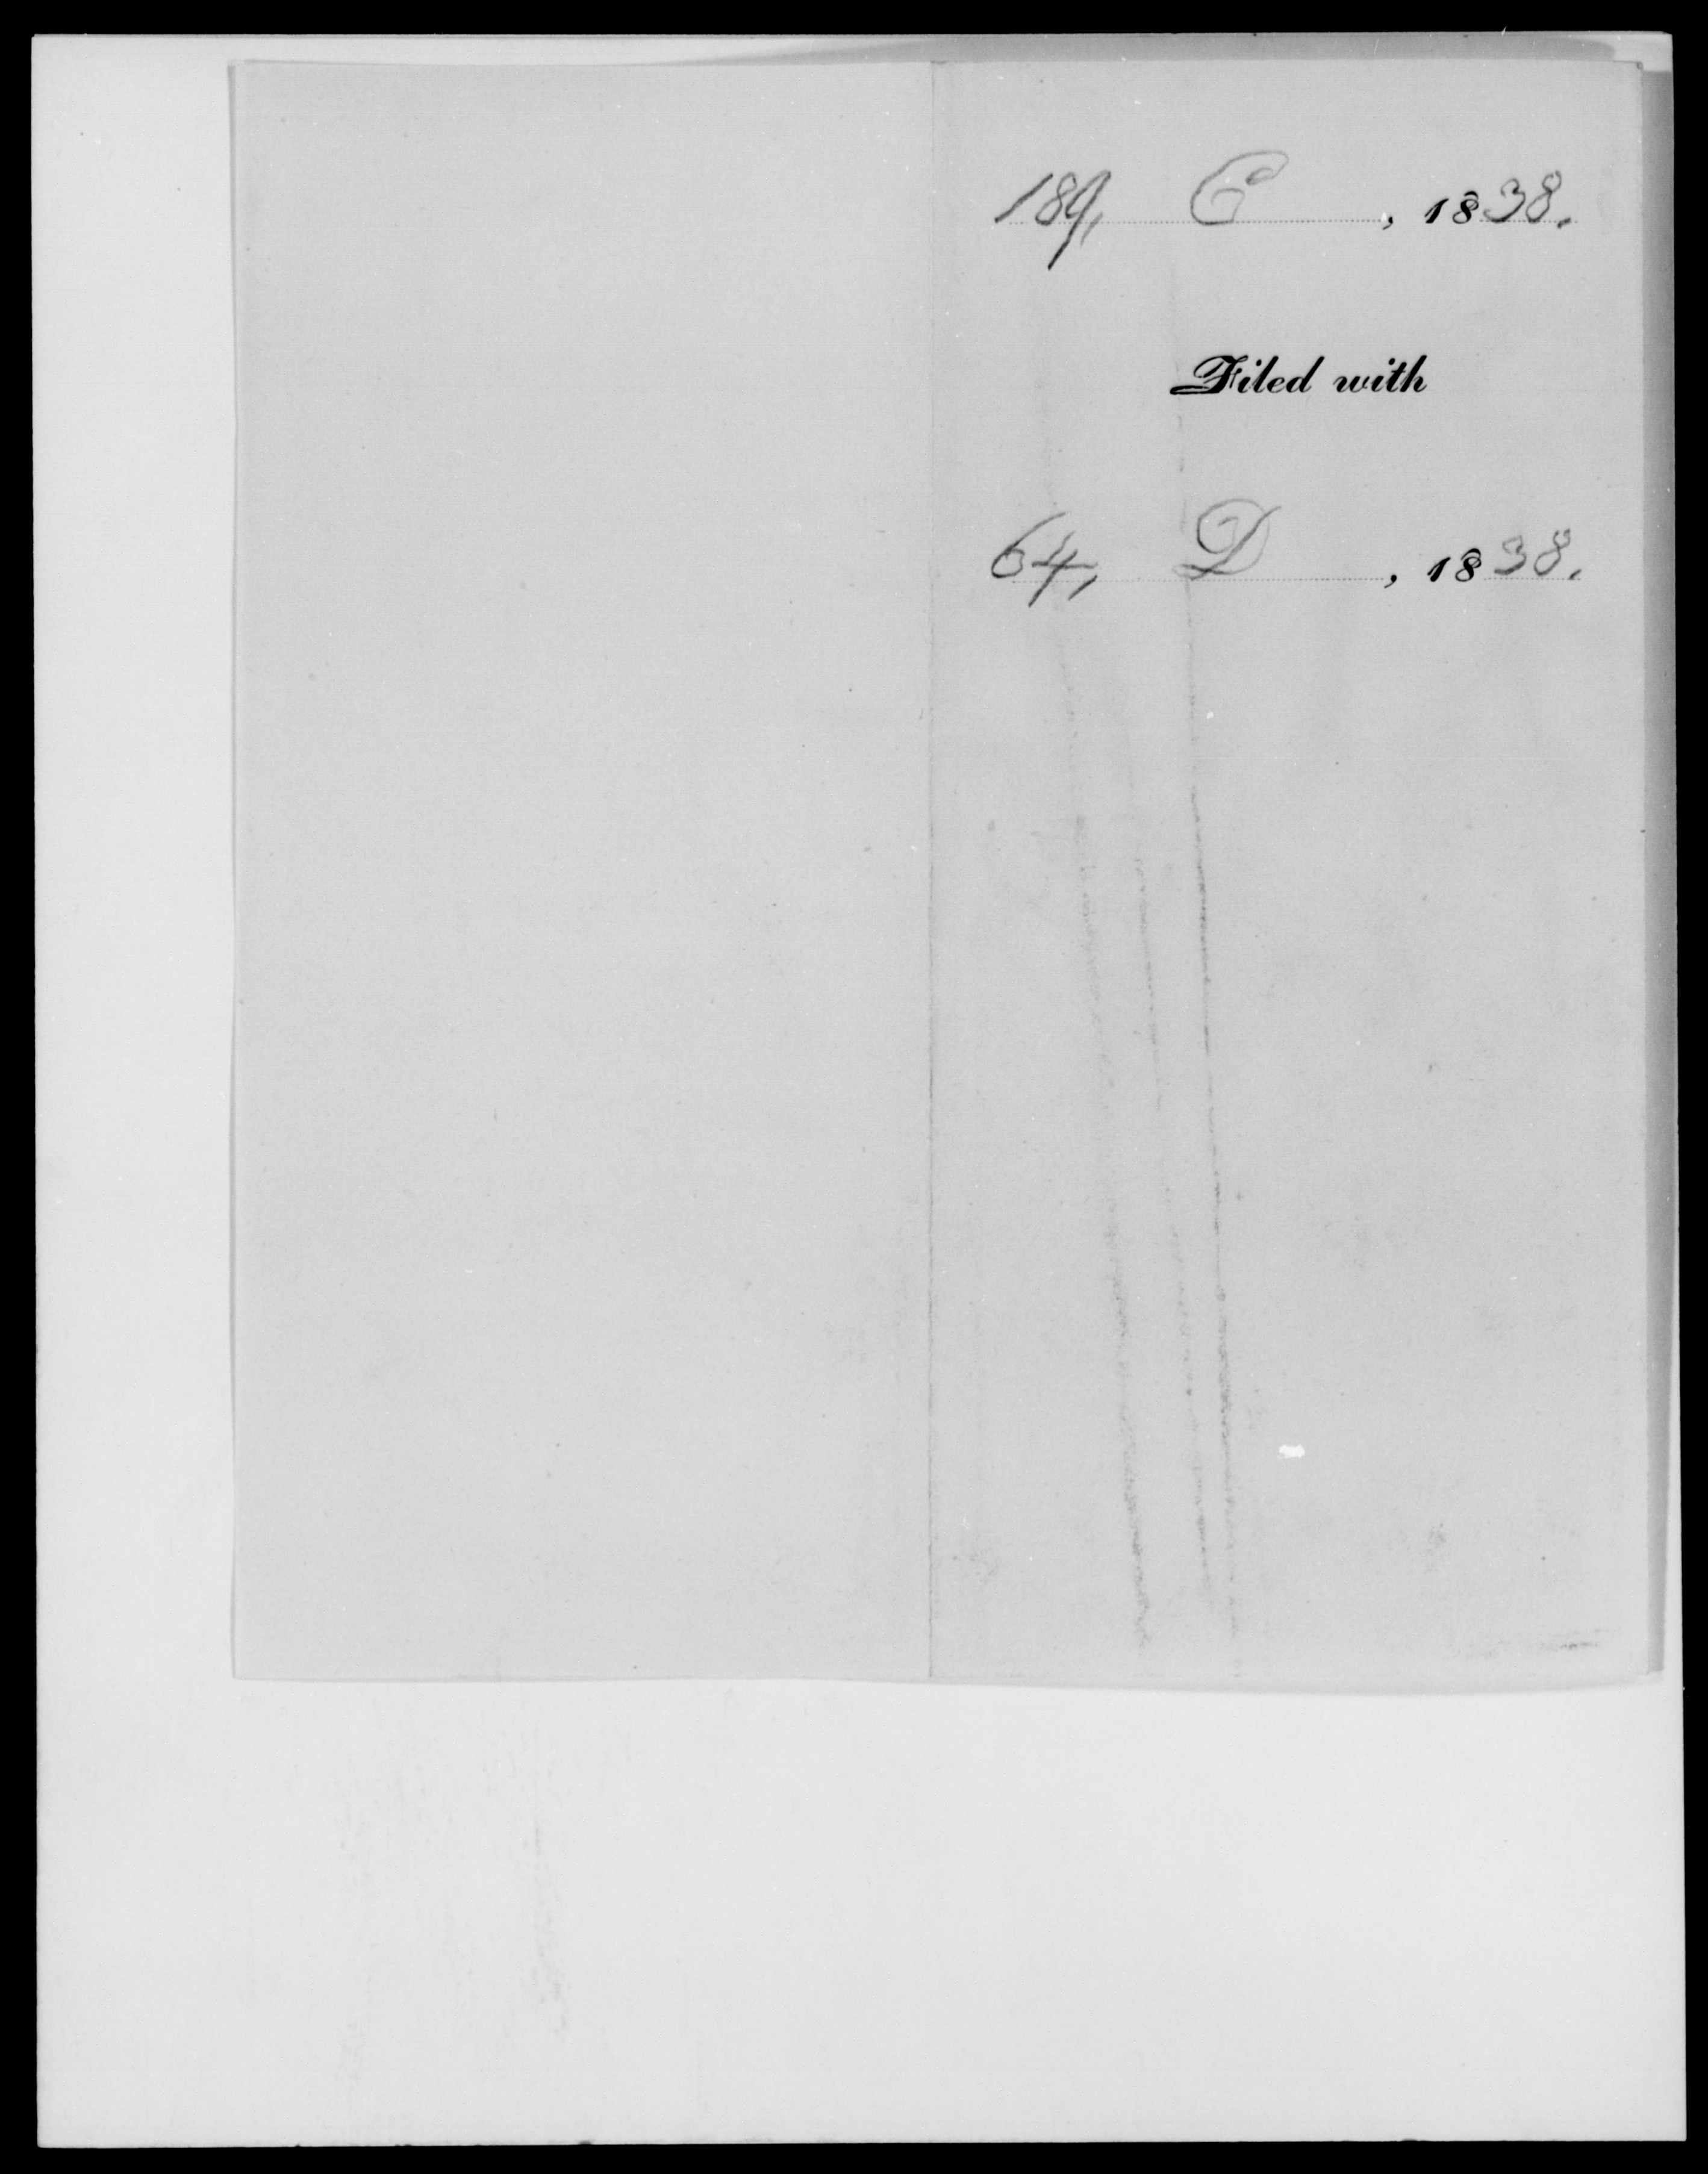 [Blank], [Blank] - State: [Blank] - Year: 1838 - File Number: C 189